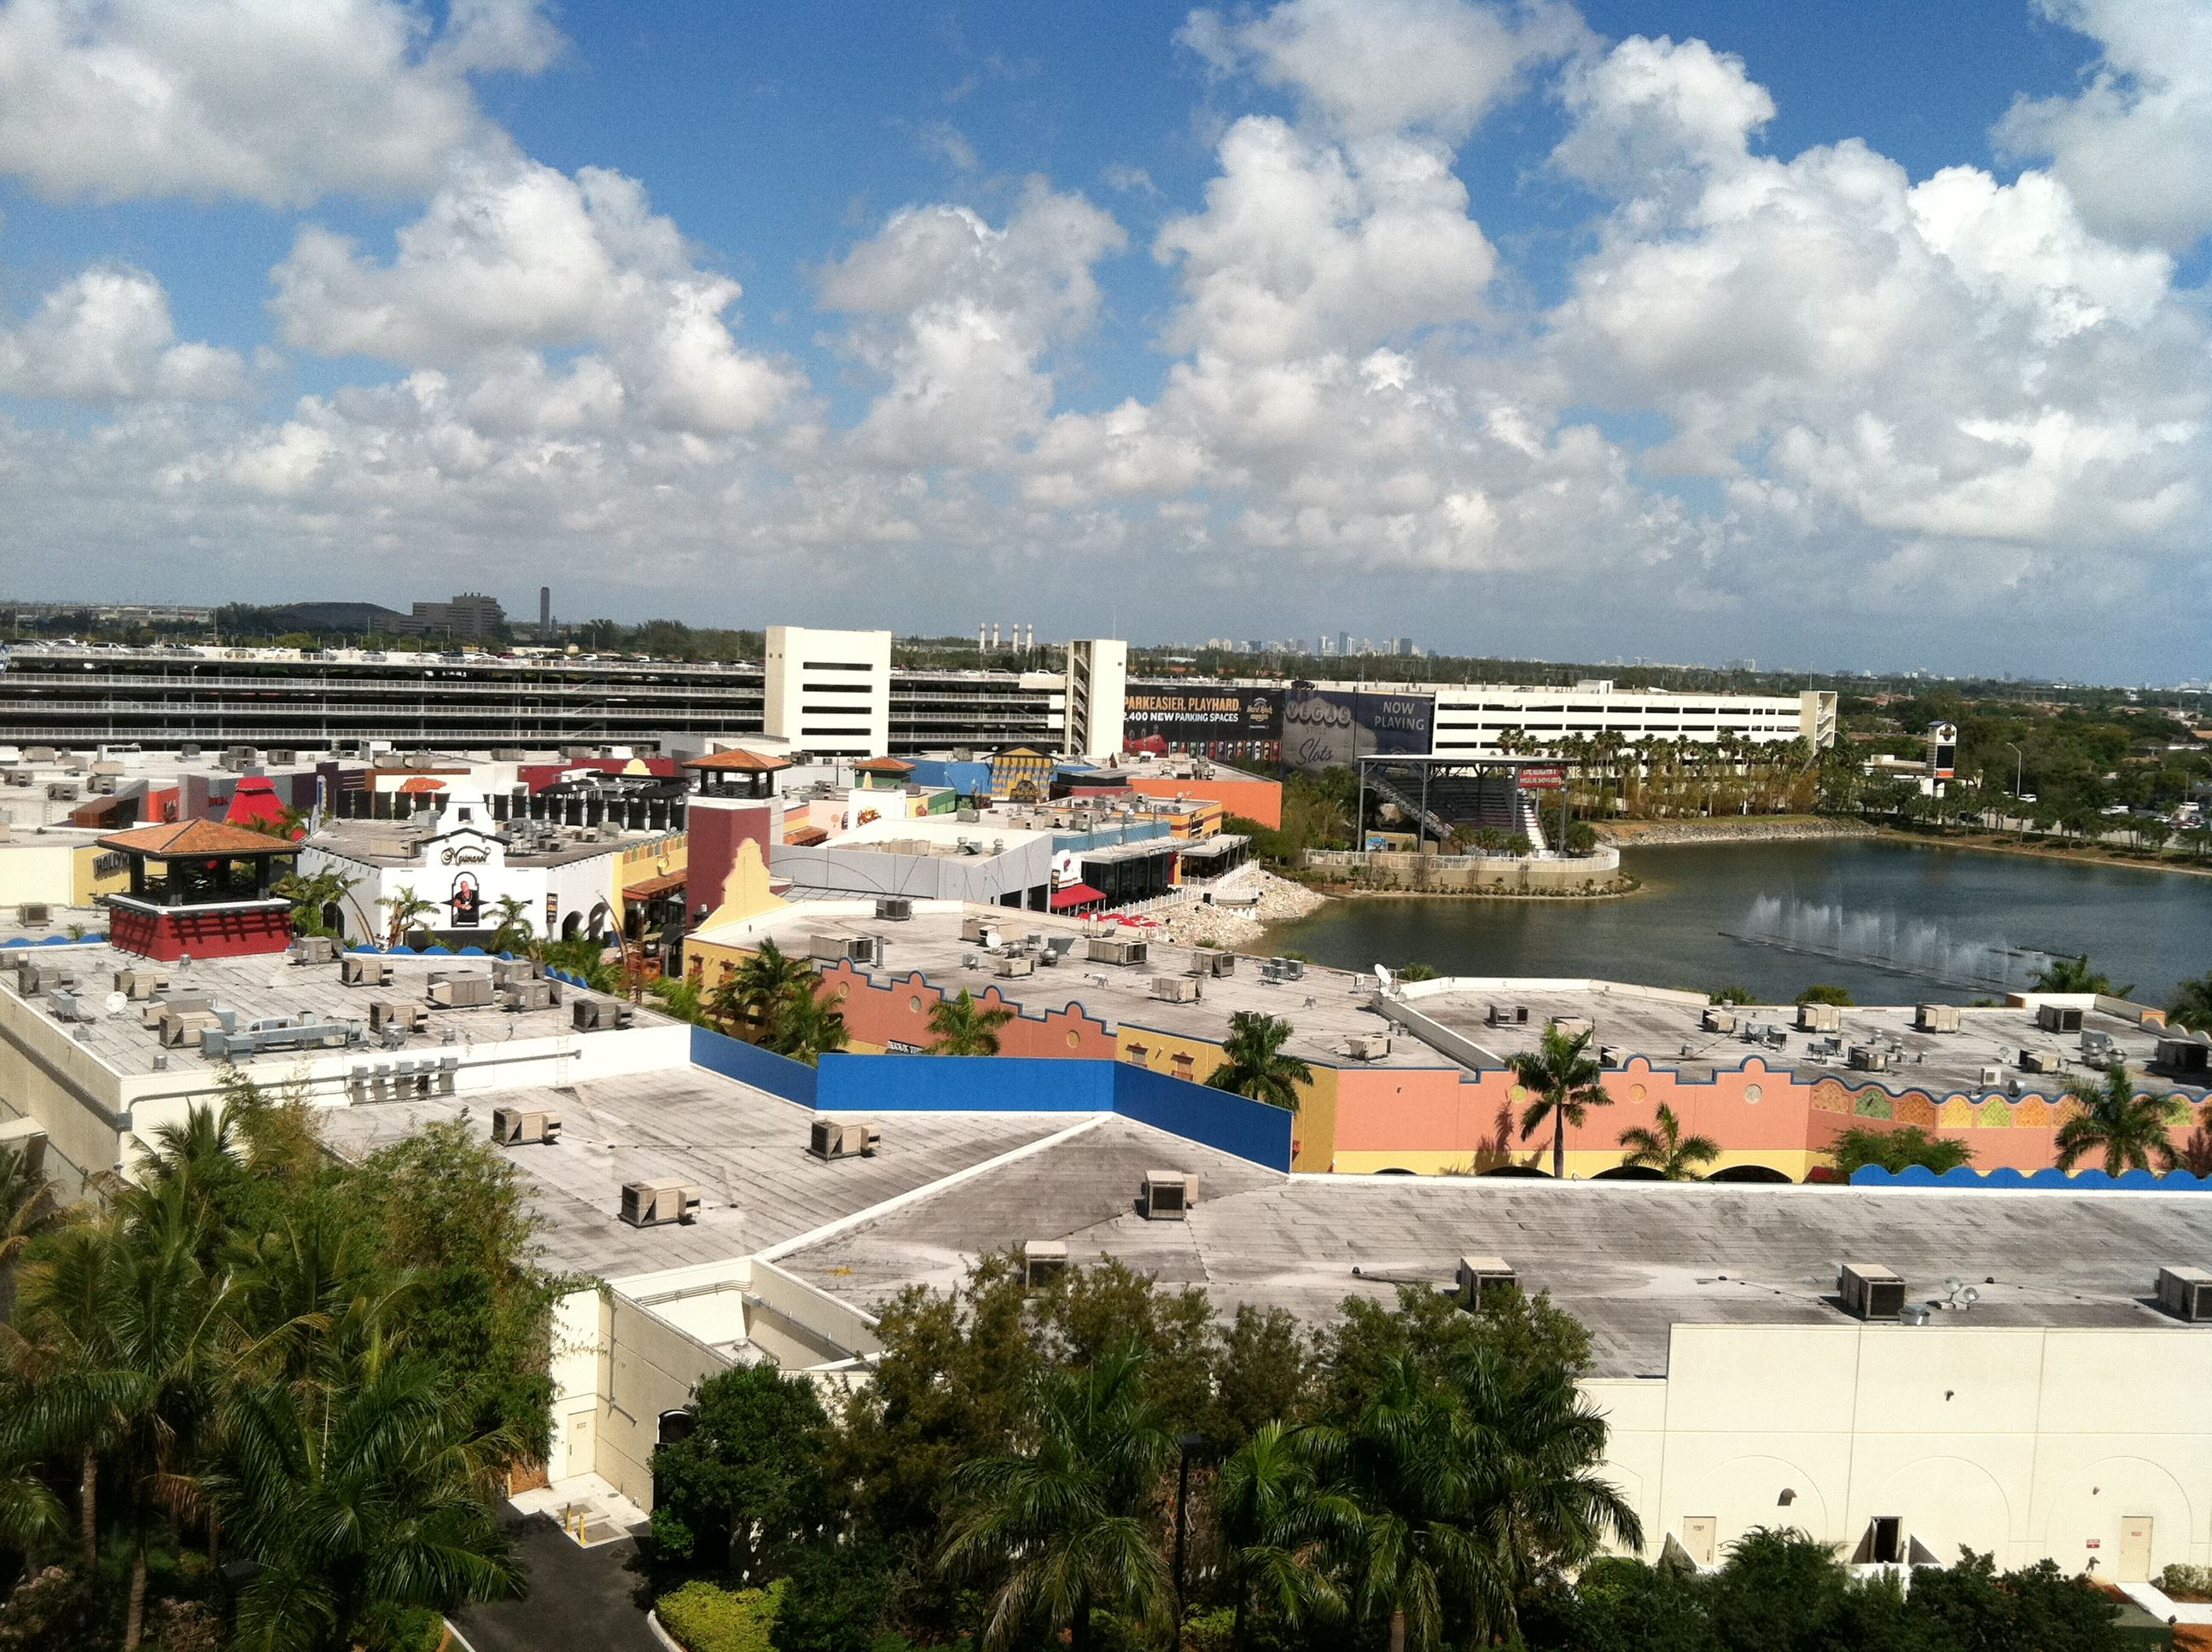 hard rock hotel hollywood florida favorite places spaces rh pinterest ca